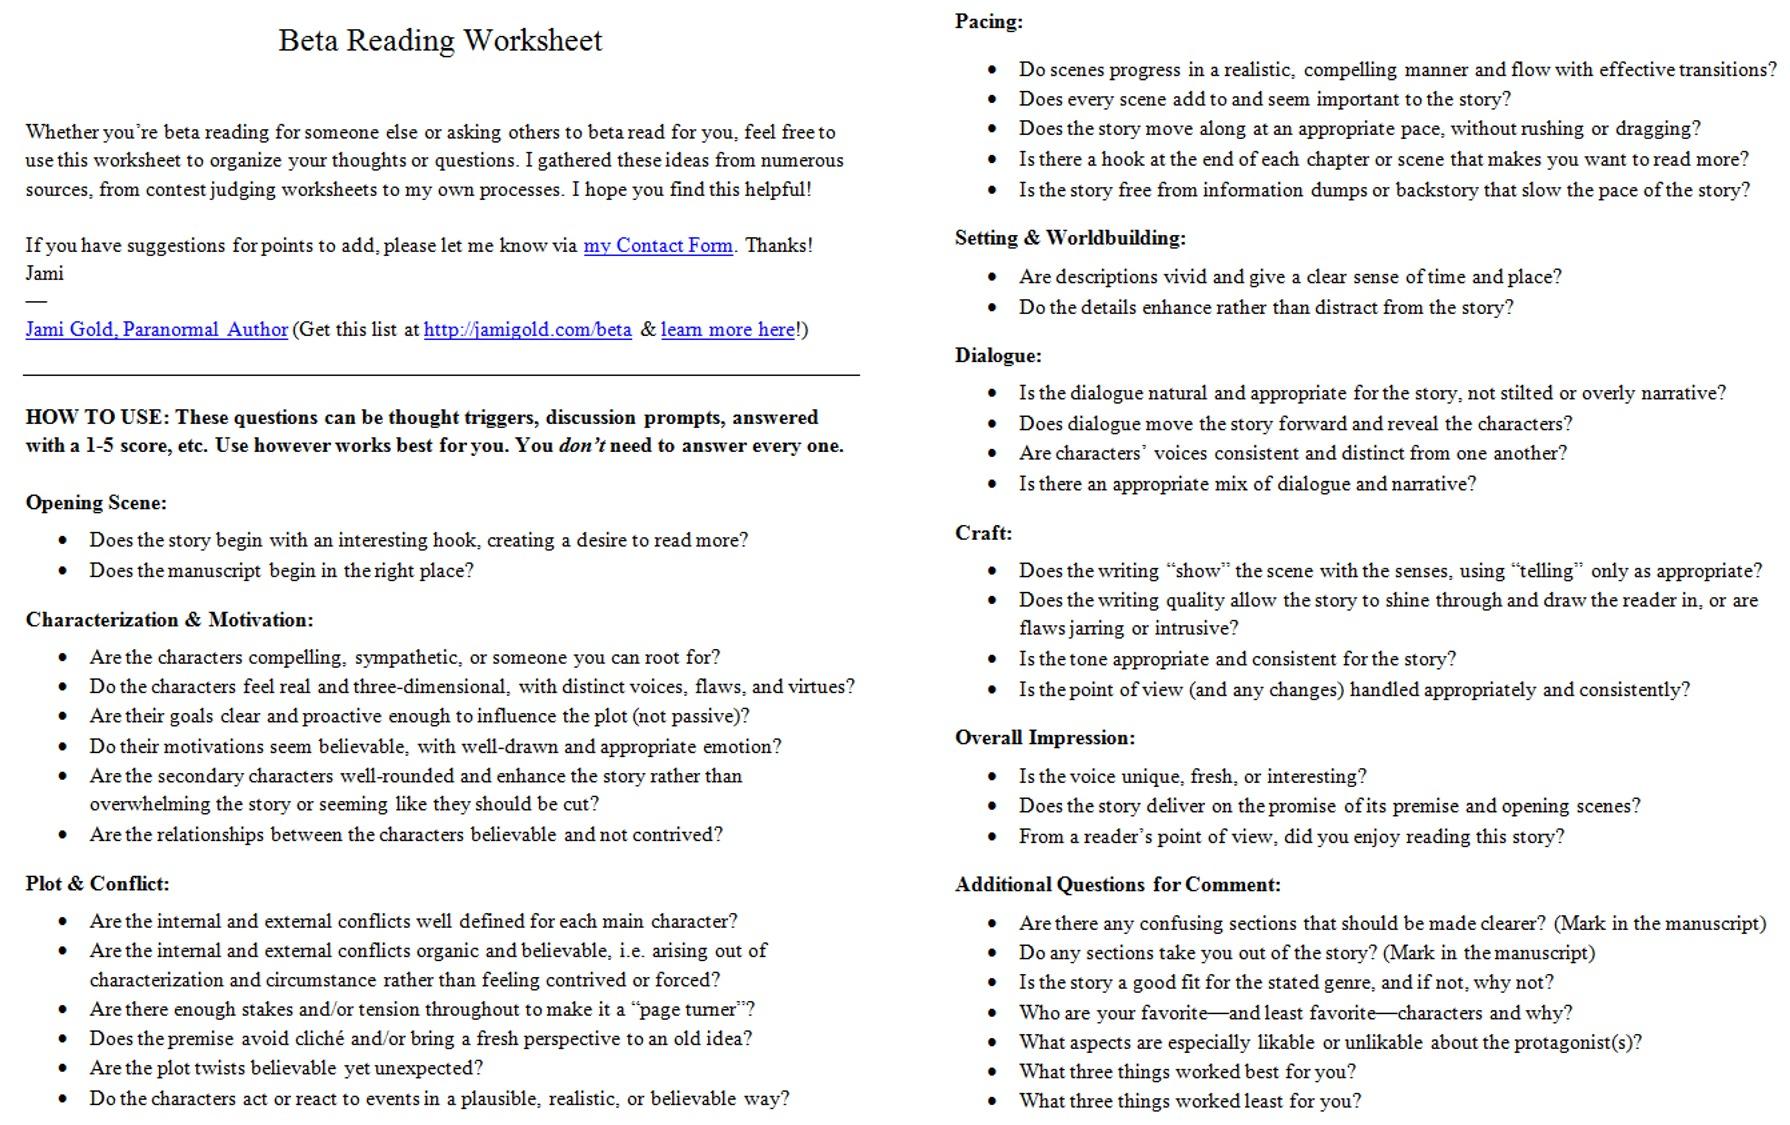 Weirdmailus  Terrific Worksheets For Writers  Jami Gold Paranormal Author With Heavenly Screen Shot Of The Twopage Beta Reading Worksheet With Astounding Geometry Worksheets For Nd Grade Also Rd Grade Worksheets Free In Addition Decimal Place Value Worksheets Th Grade And Number Sets Worksheets As Well As Five Themes Of Geography Worksheets Additionally Create A Bar Graph Worksheet From Jamigoldcom With Weirdmailus  Heavenly Worksheets For Writers  Jami Gold Paranormal Author With Astounding Screen Shot Of The Twopage Beta Reading Worksheet And Terrific Geometry Worksheets For Nd Grade Also Rd Grade Worksheets Free In Addition Decimal Place Value Worksheets Th Grade From Jamigoldcom